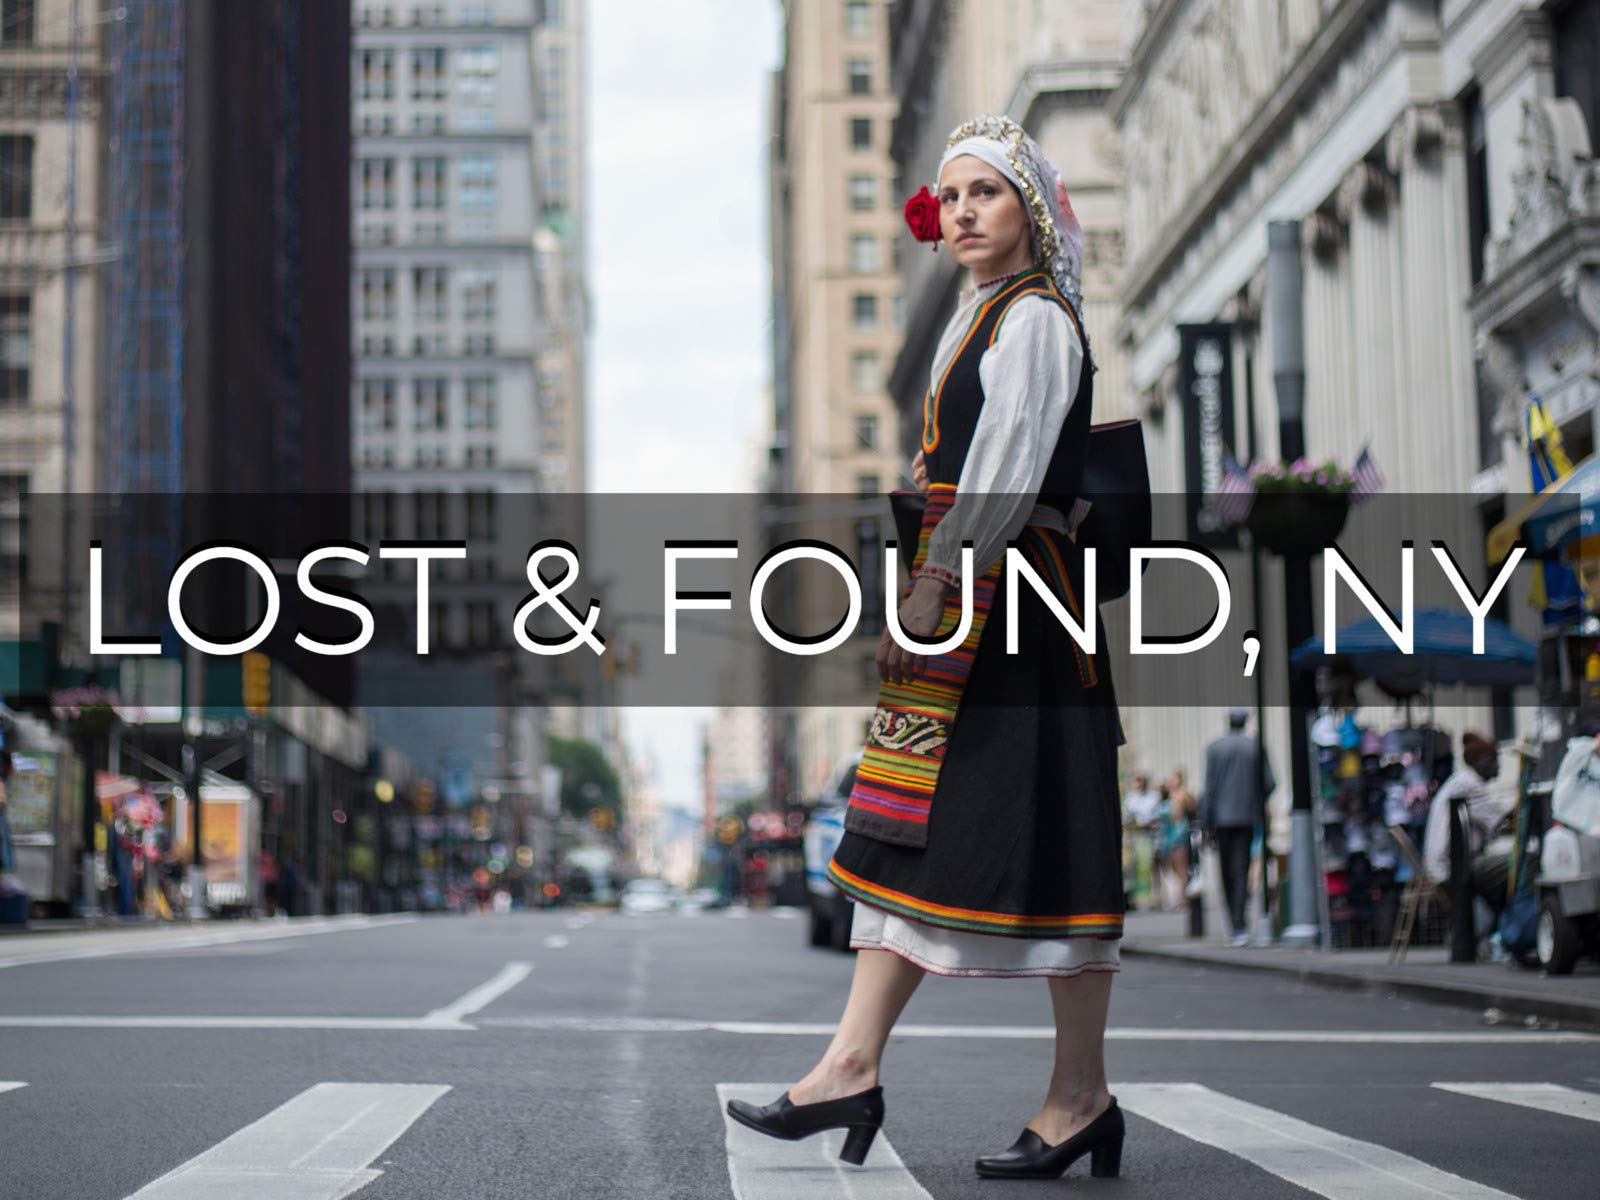 Lost & Found, NY on Amazon Prime Video UK